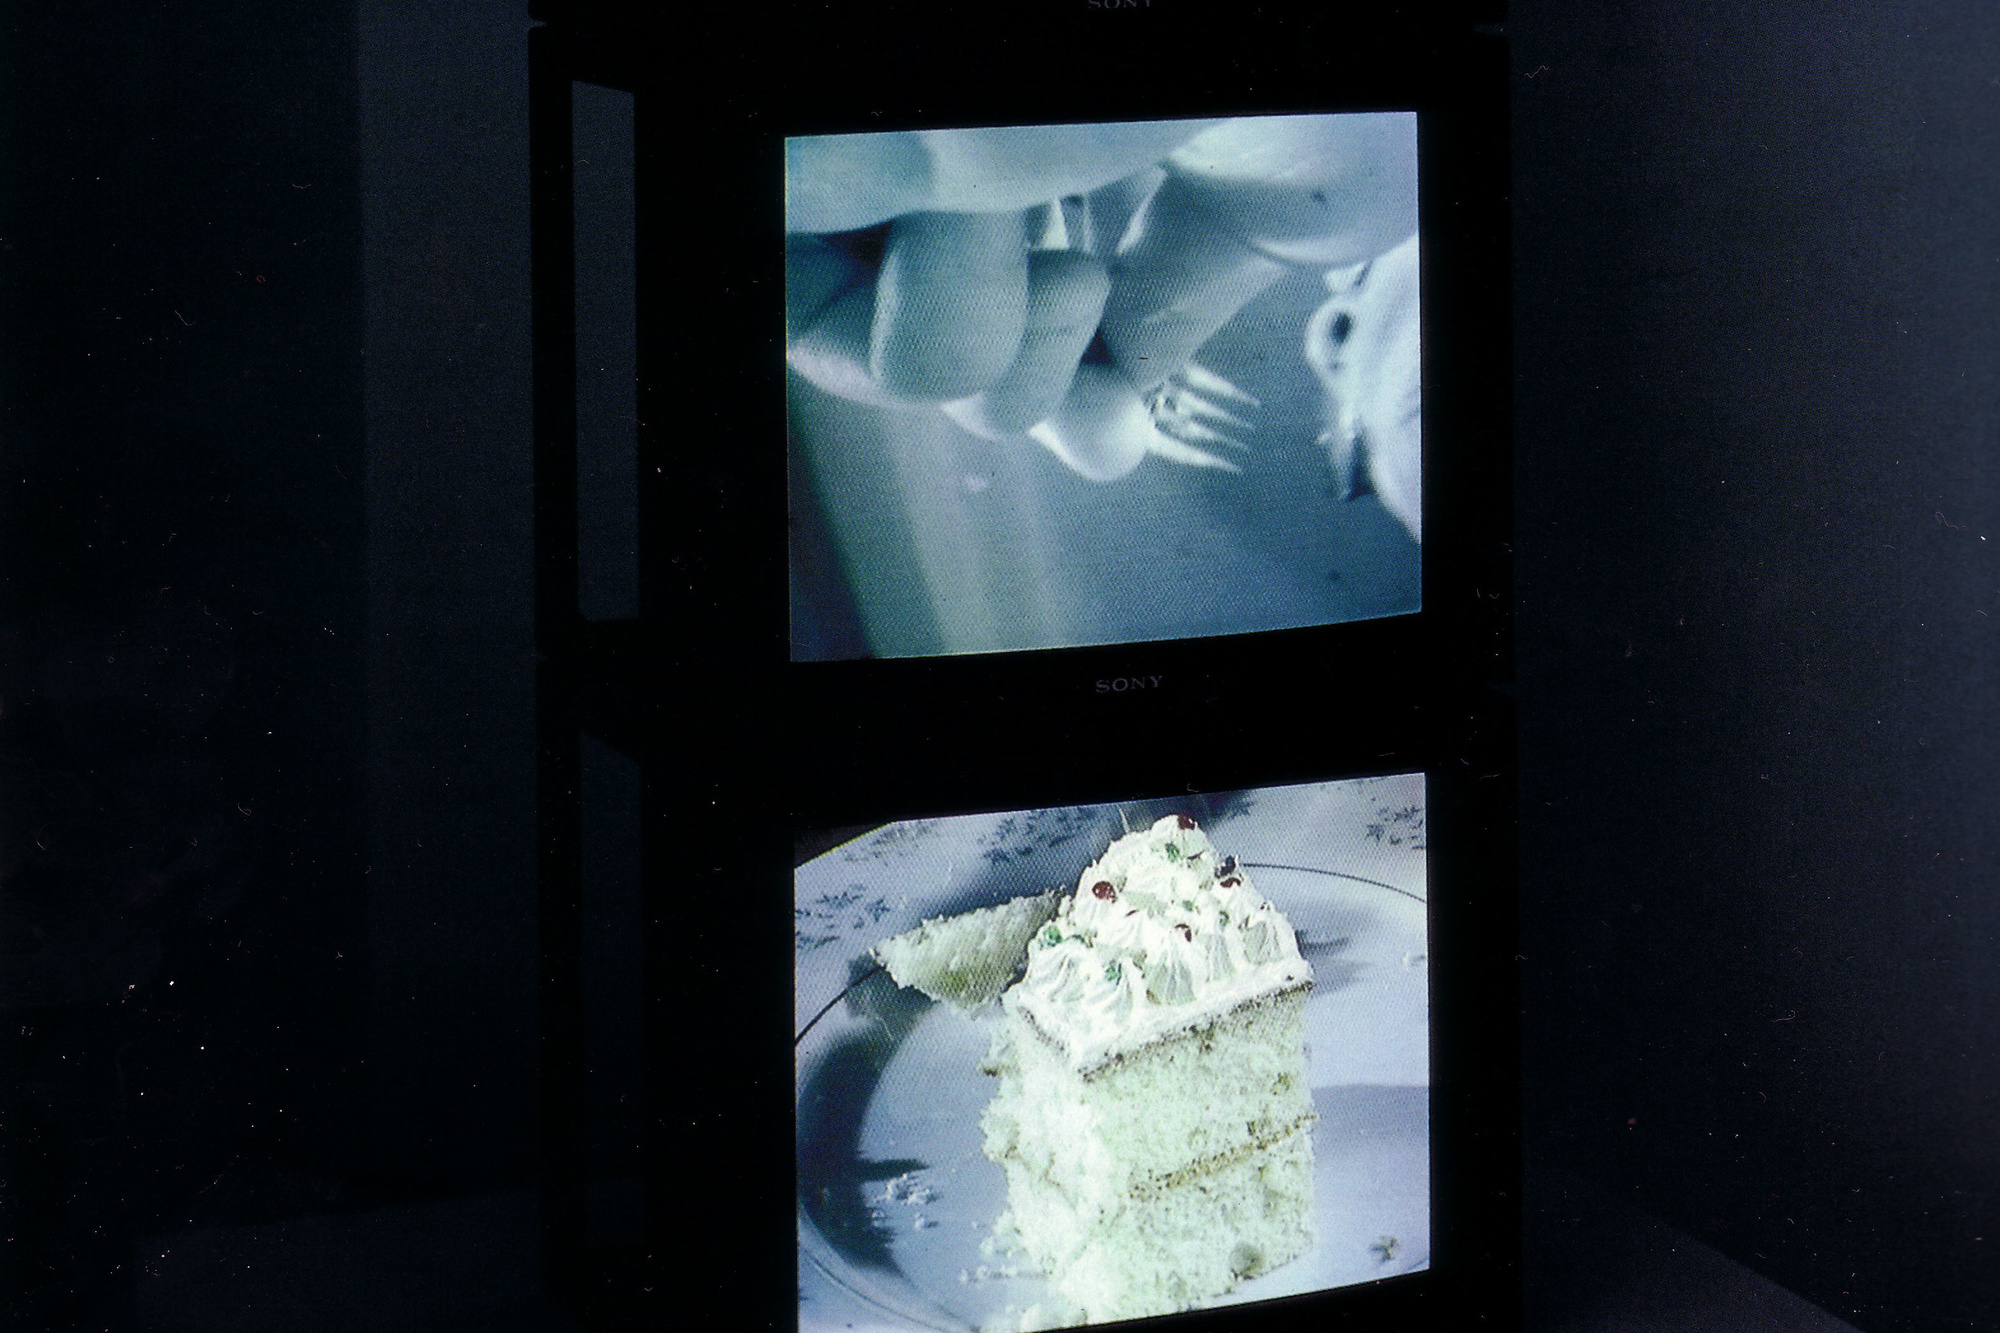 Zhang Peili. Eating. 1997. Three-channel video (color, sound). Gift of The Junior Associates of the Museum of Modern Art. © 2016 Zhang Peili